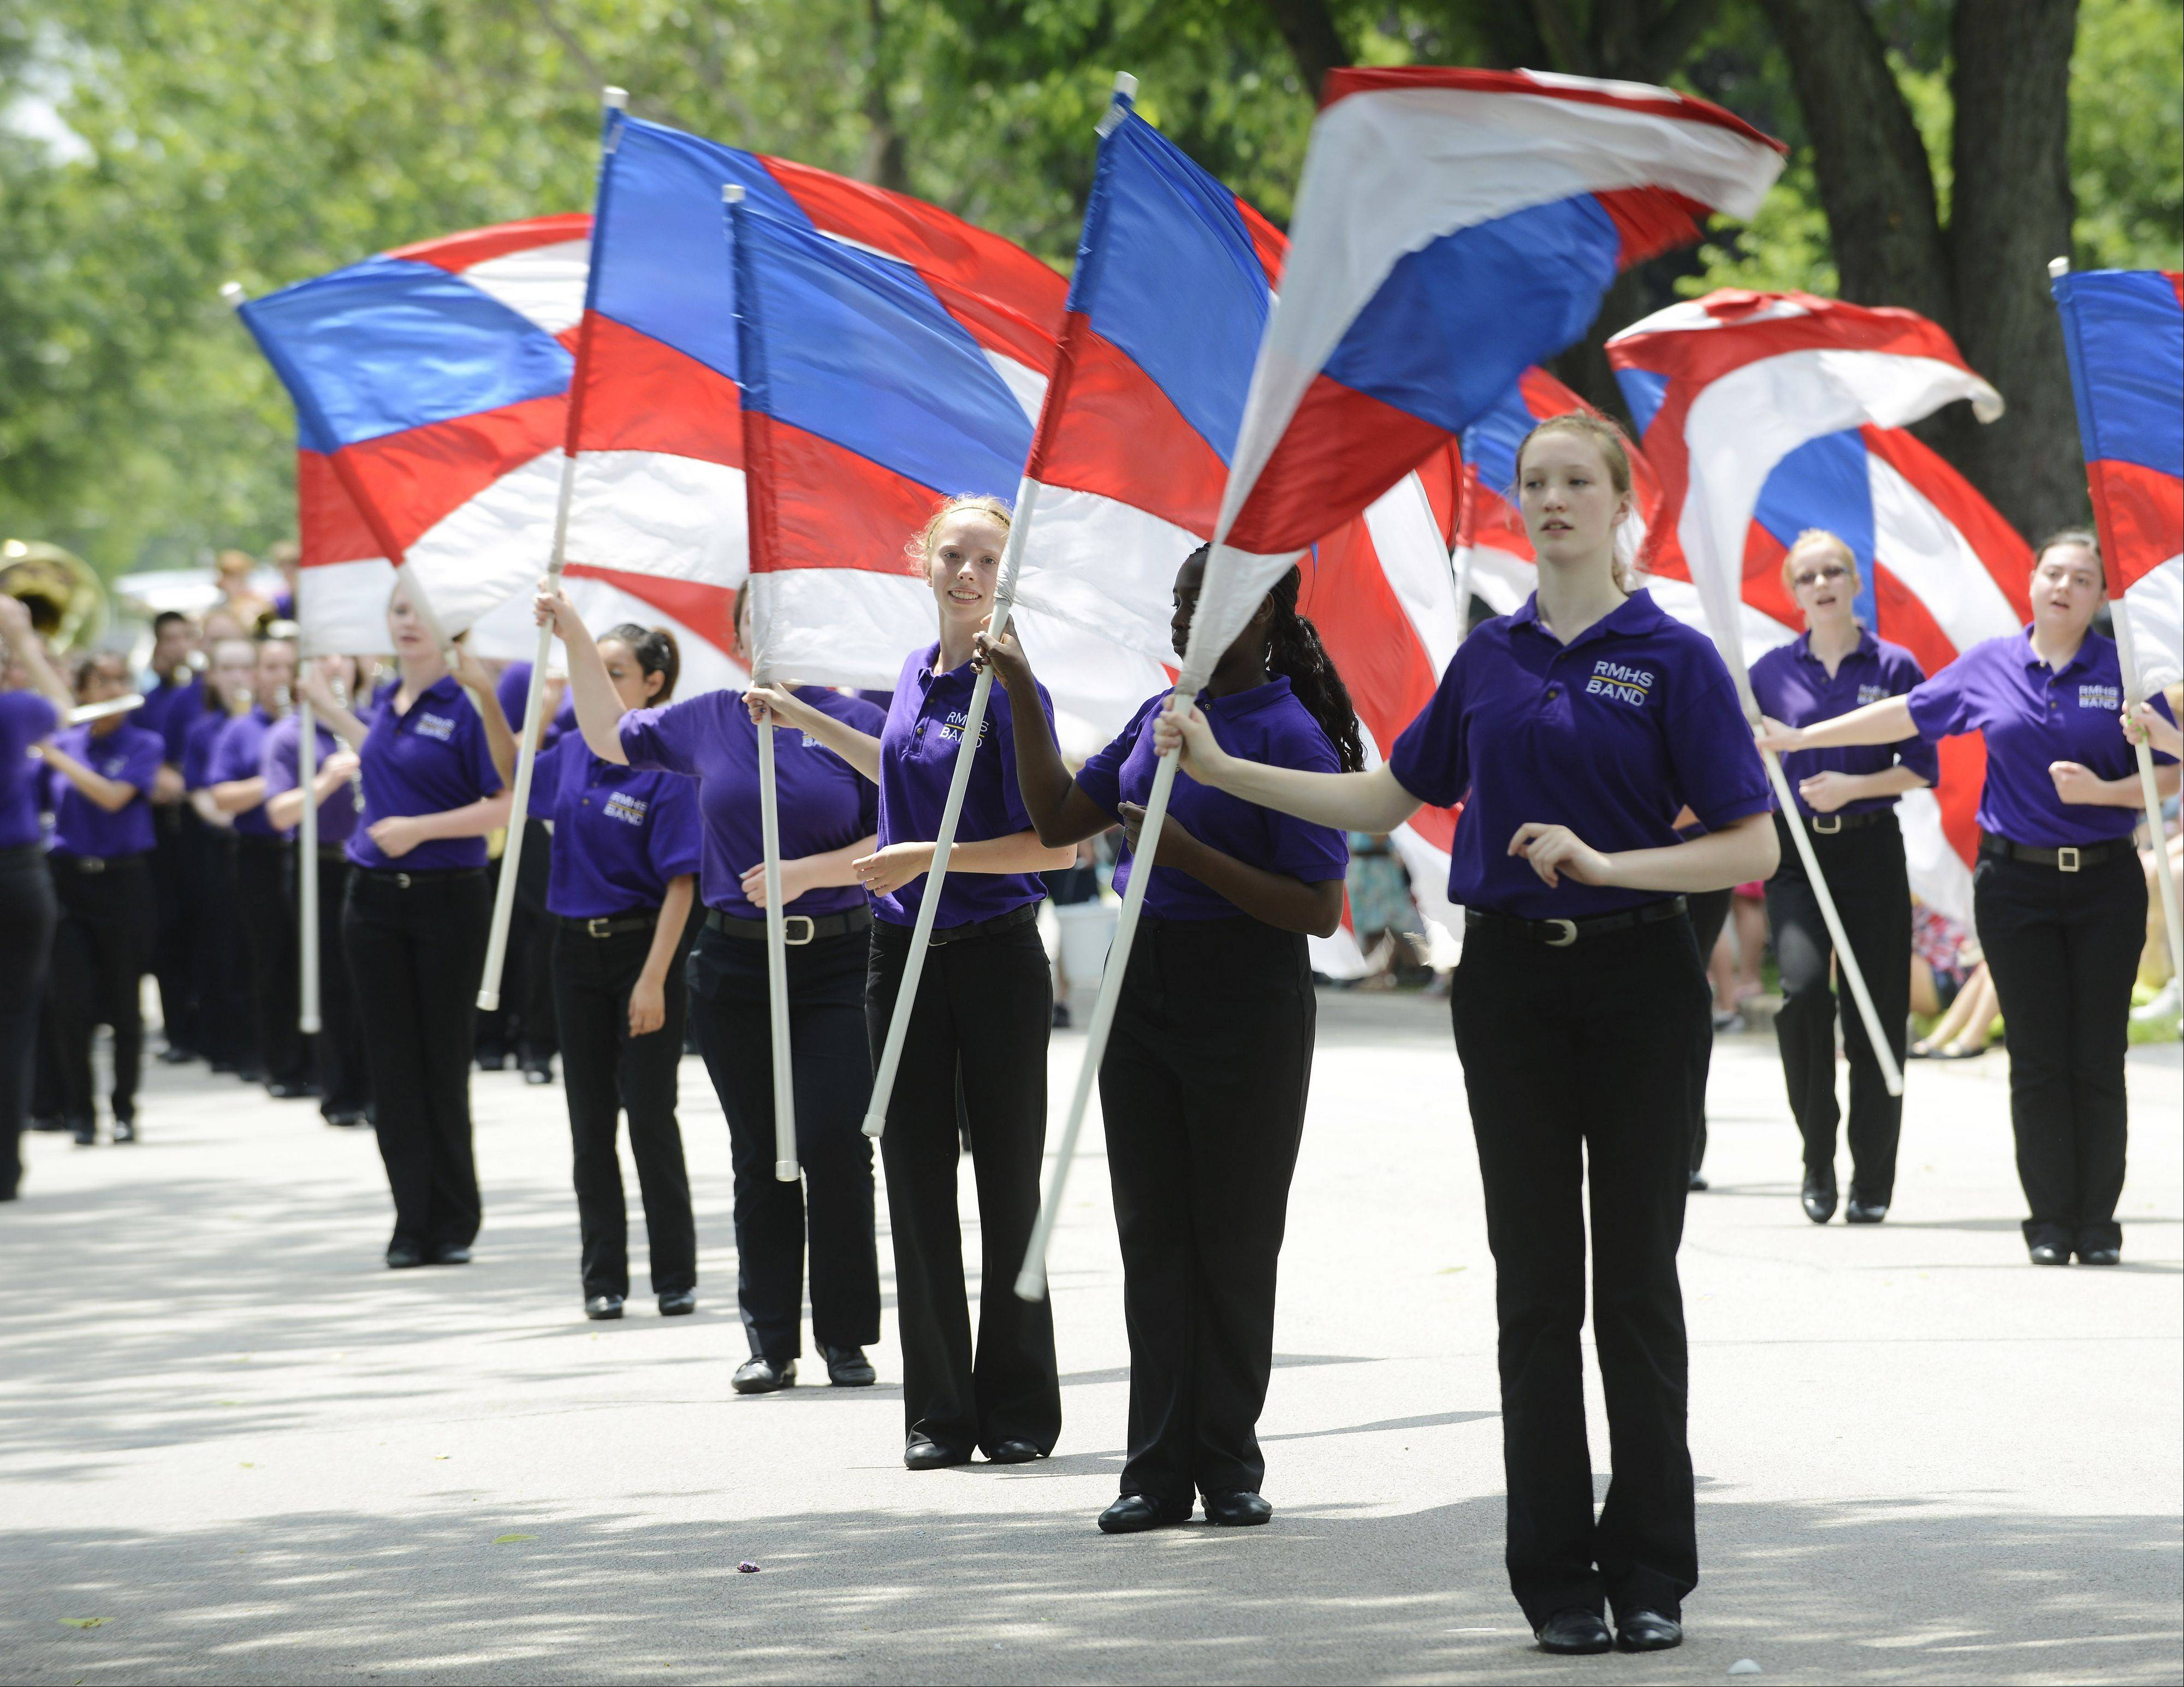 Junior Danielle Sioui, front, is among the members of the Rolling Meadows High School flag team performing during the Rolling Meadows Fourth of July parade Thursday.